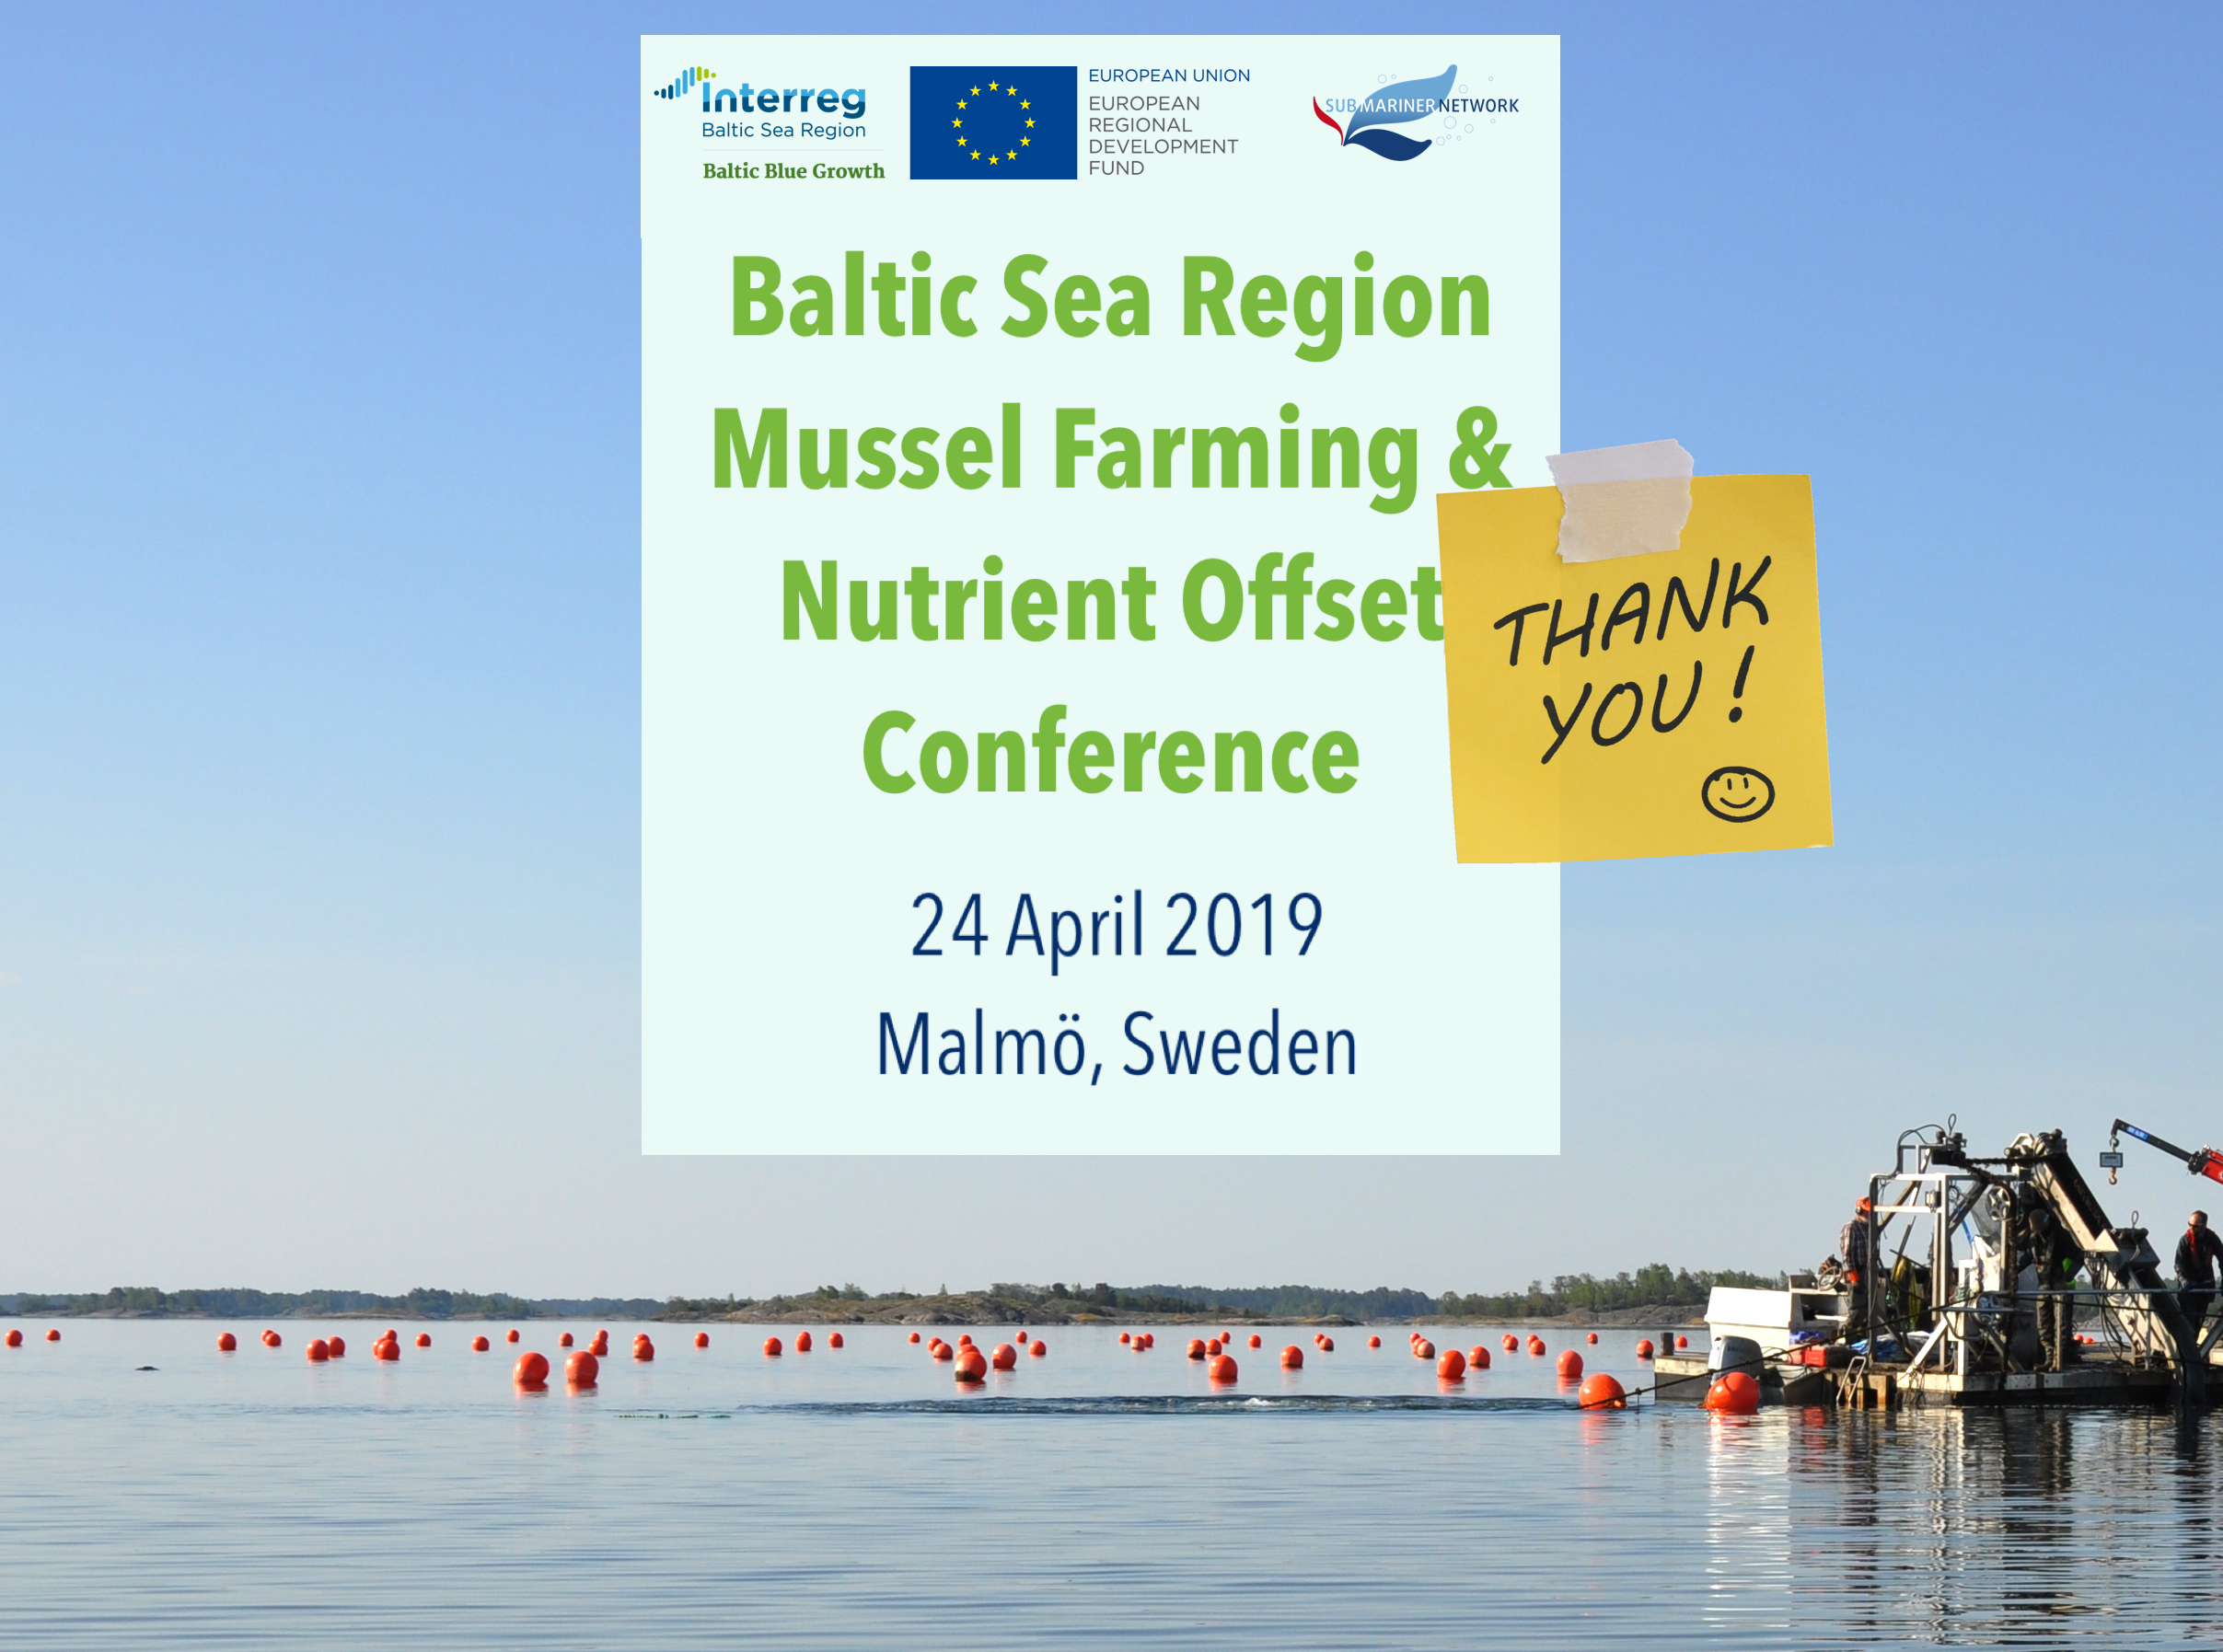 REGISTER for the Baltic Sea Mussel Farming & Nutrient Offset Conference